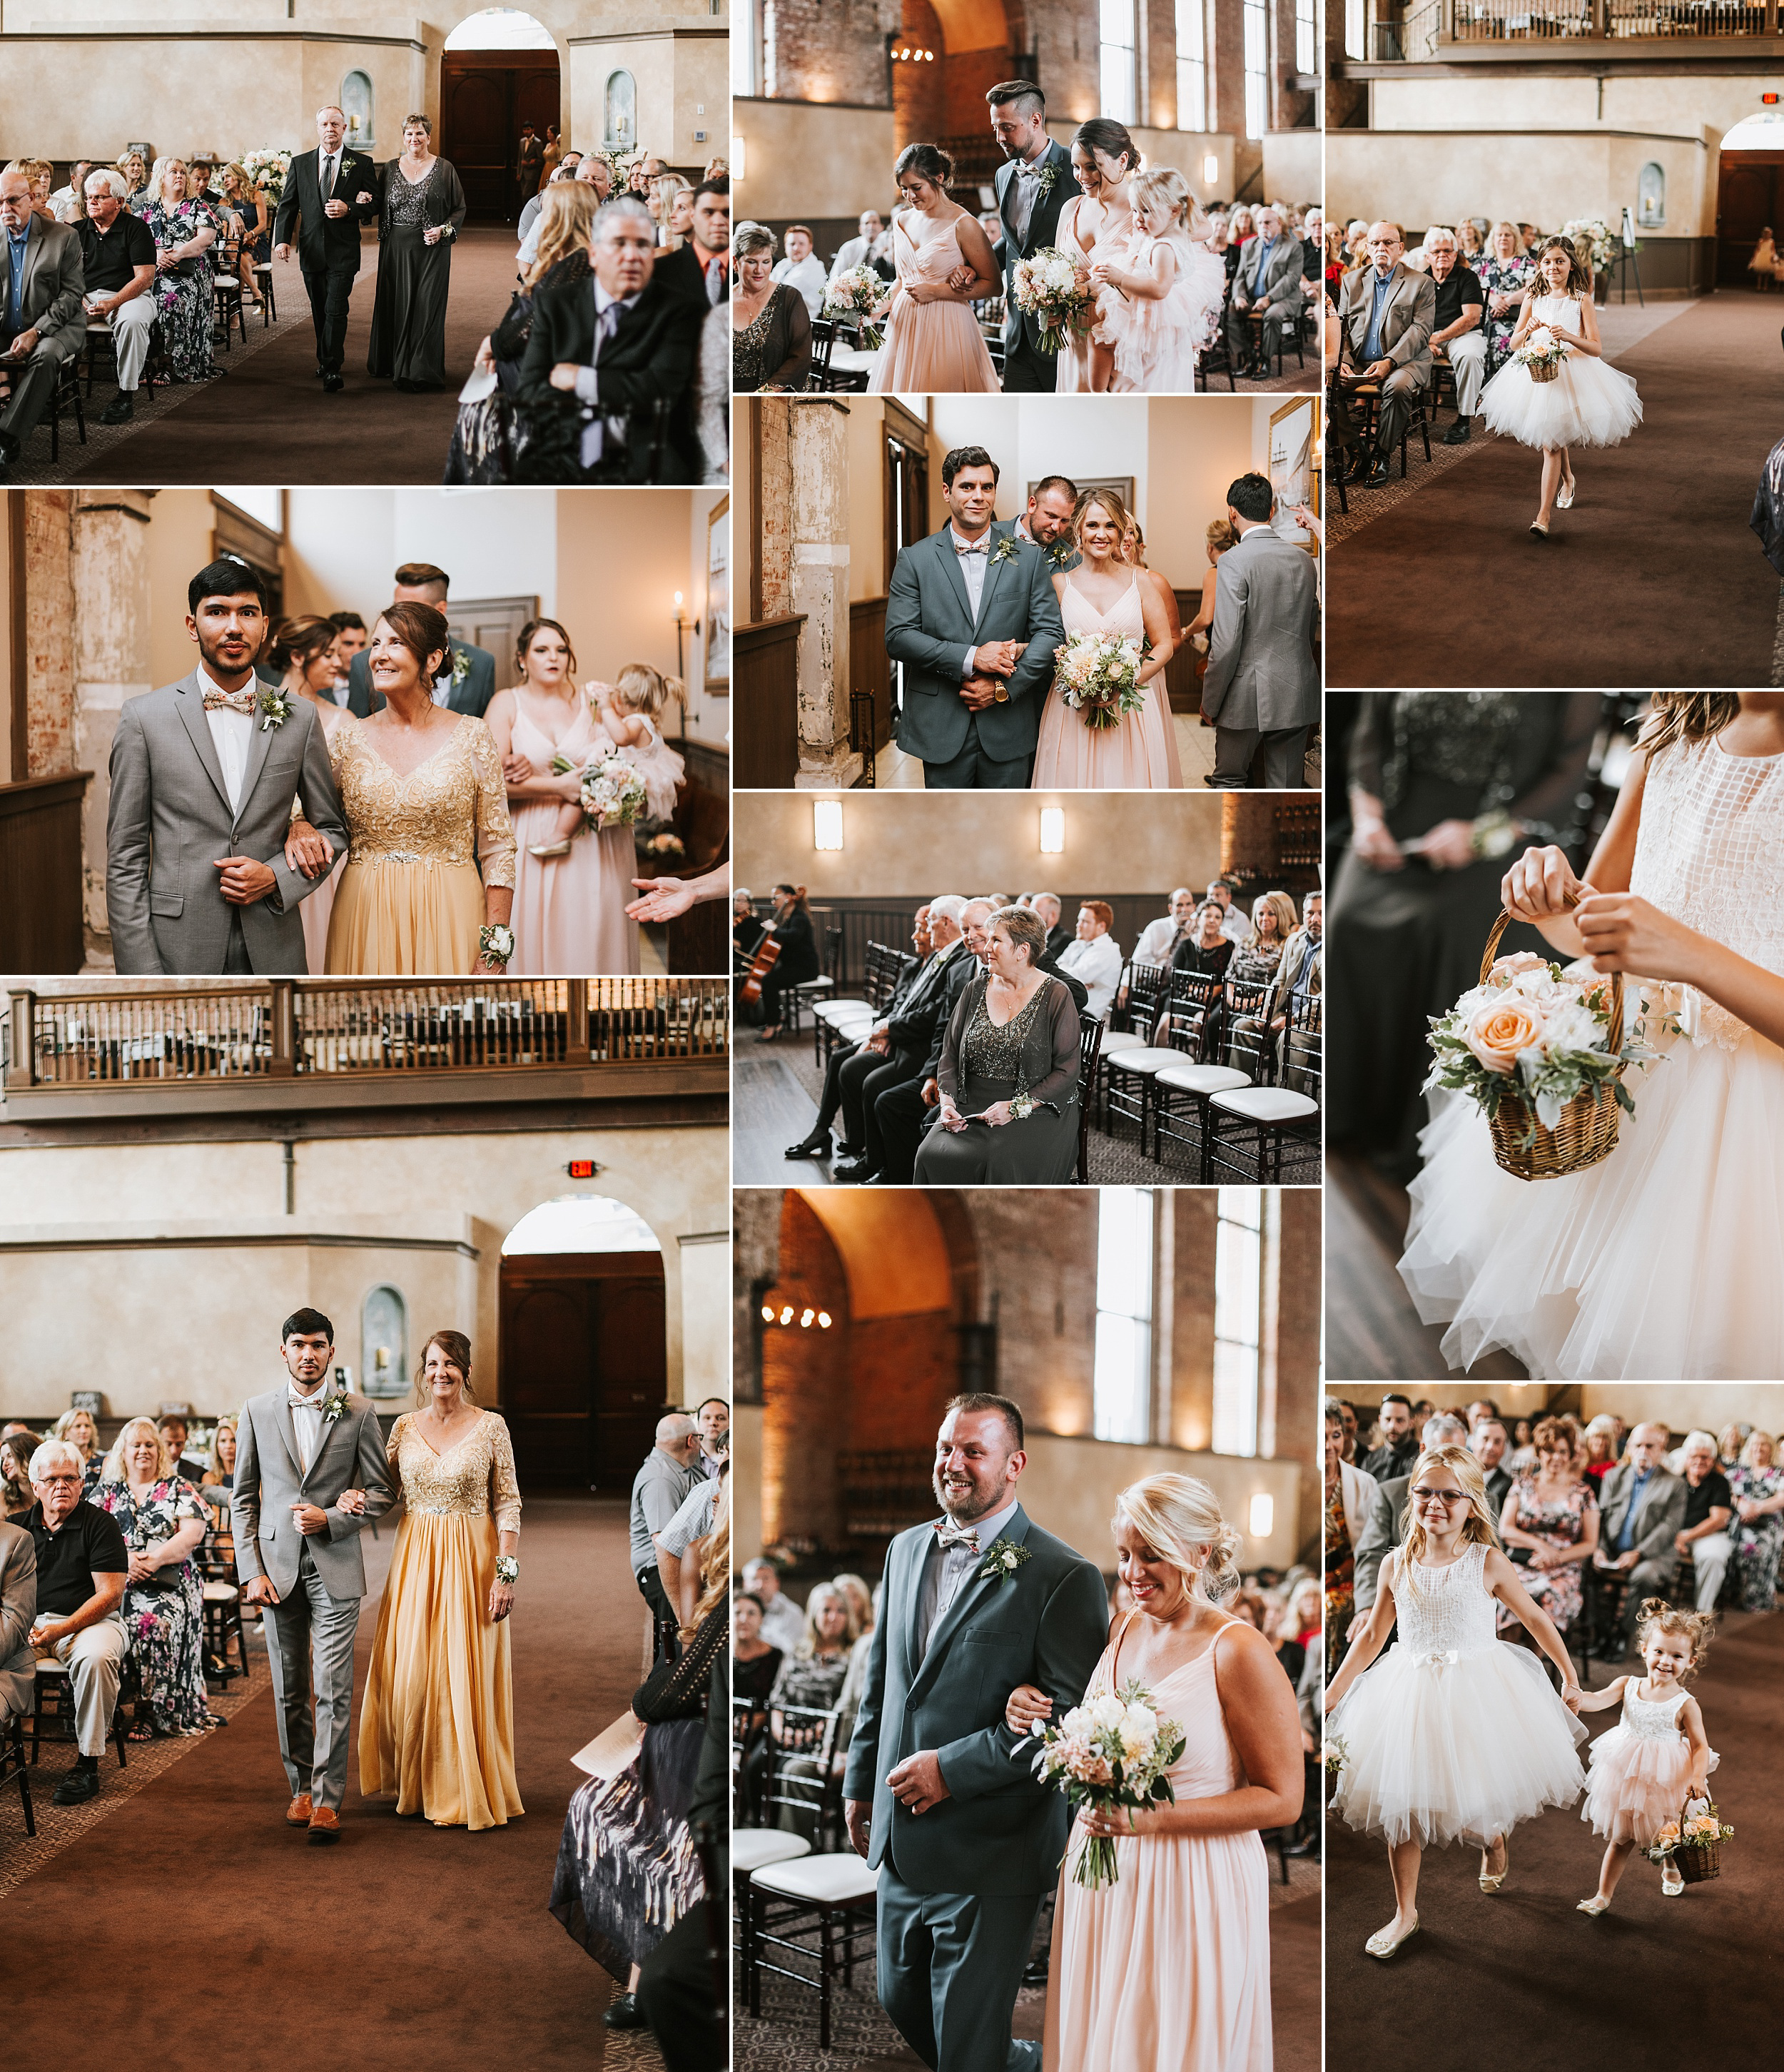 Brooke Townsend Photography - Cincinnati Wedding Photographer (100 of 170).jpg